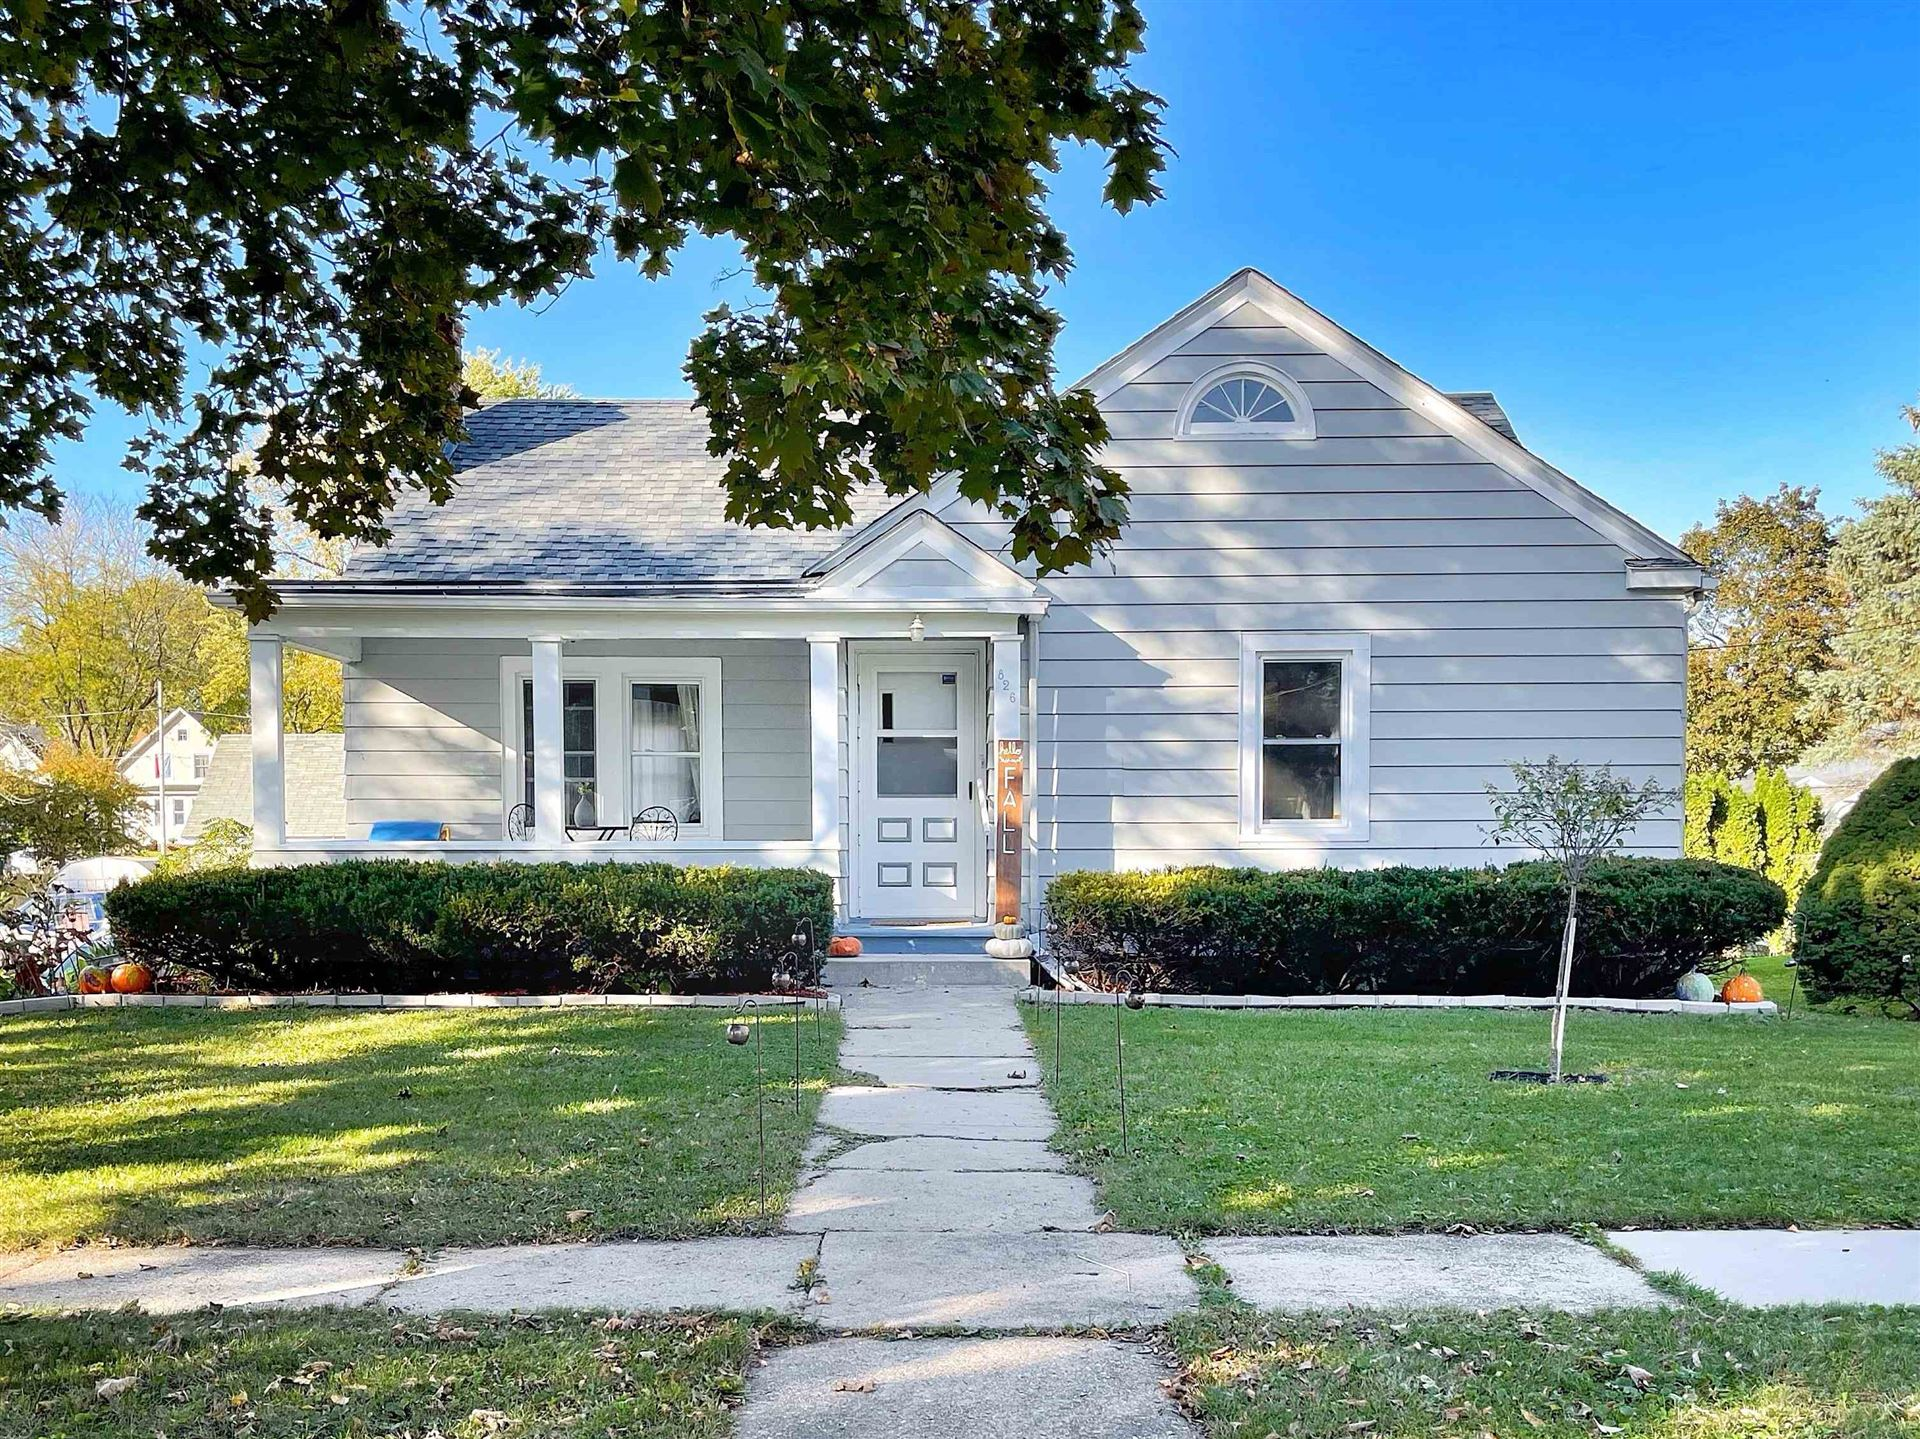 826 Dempster St, Fort Atkinson, WI 53538 - #: 1922250